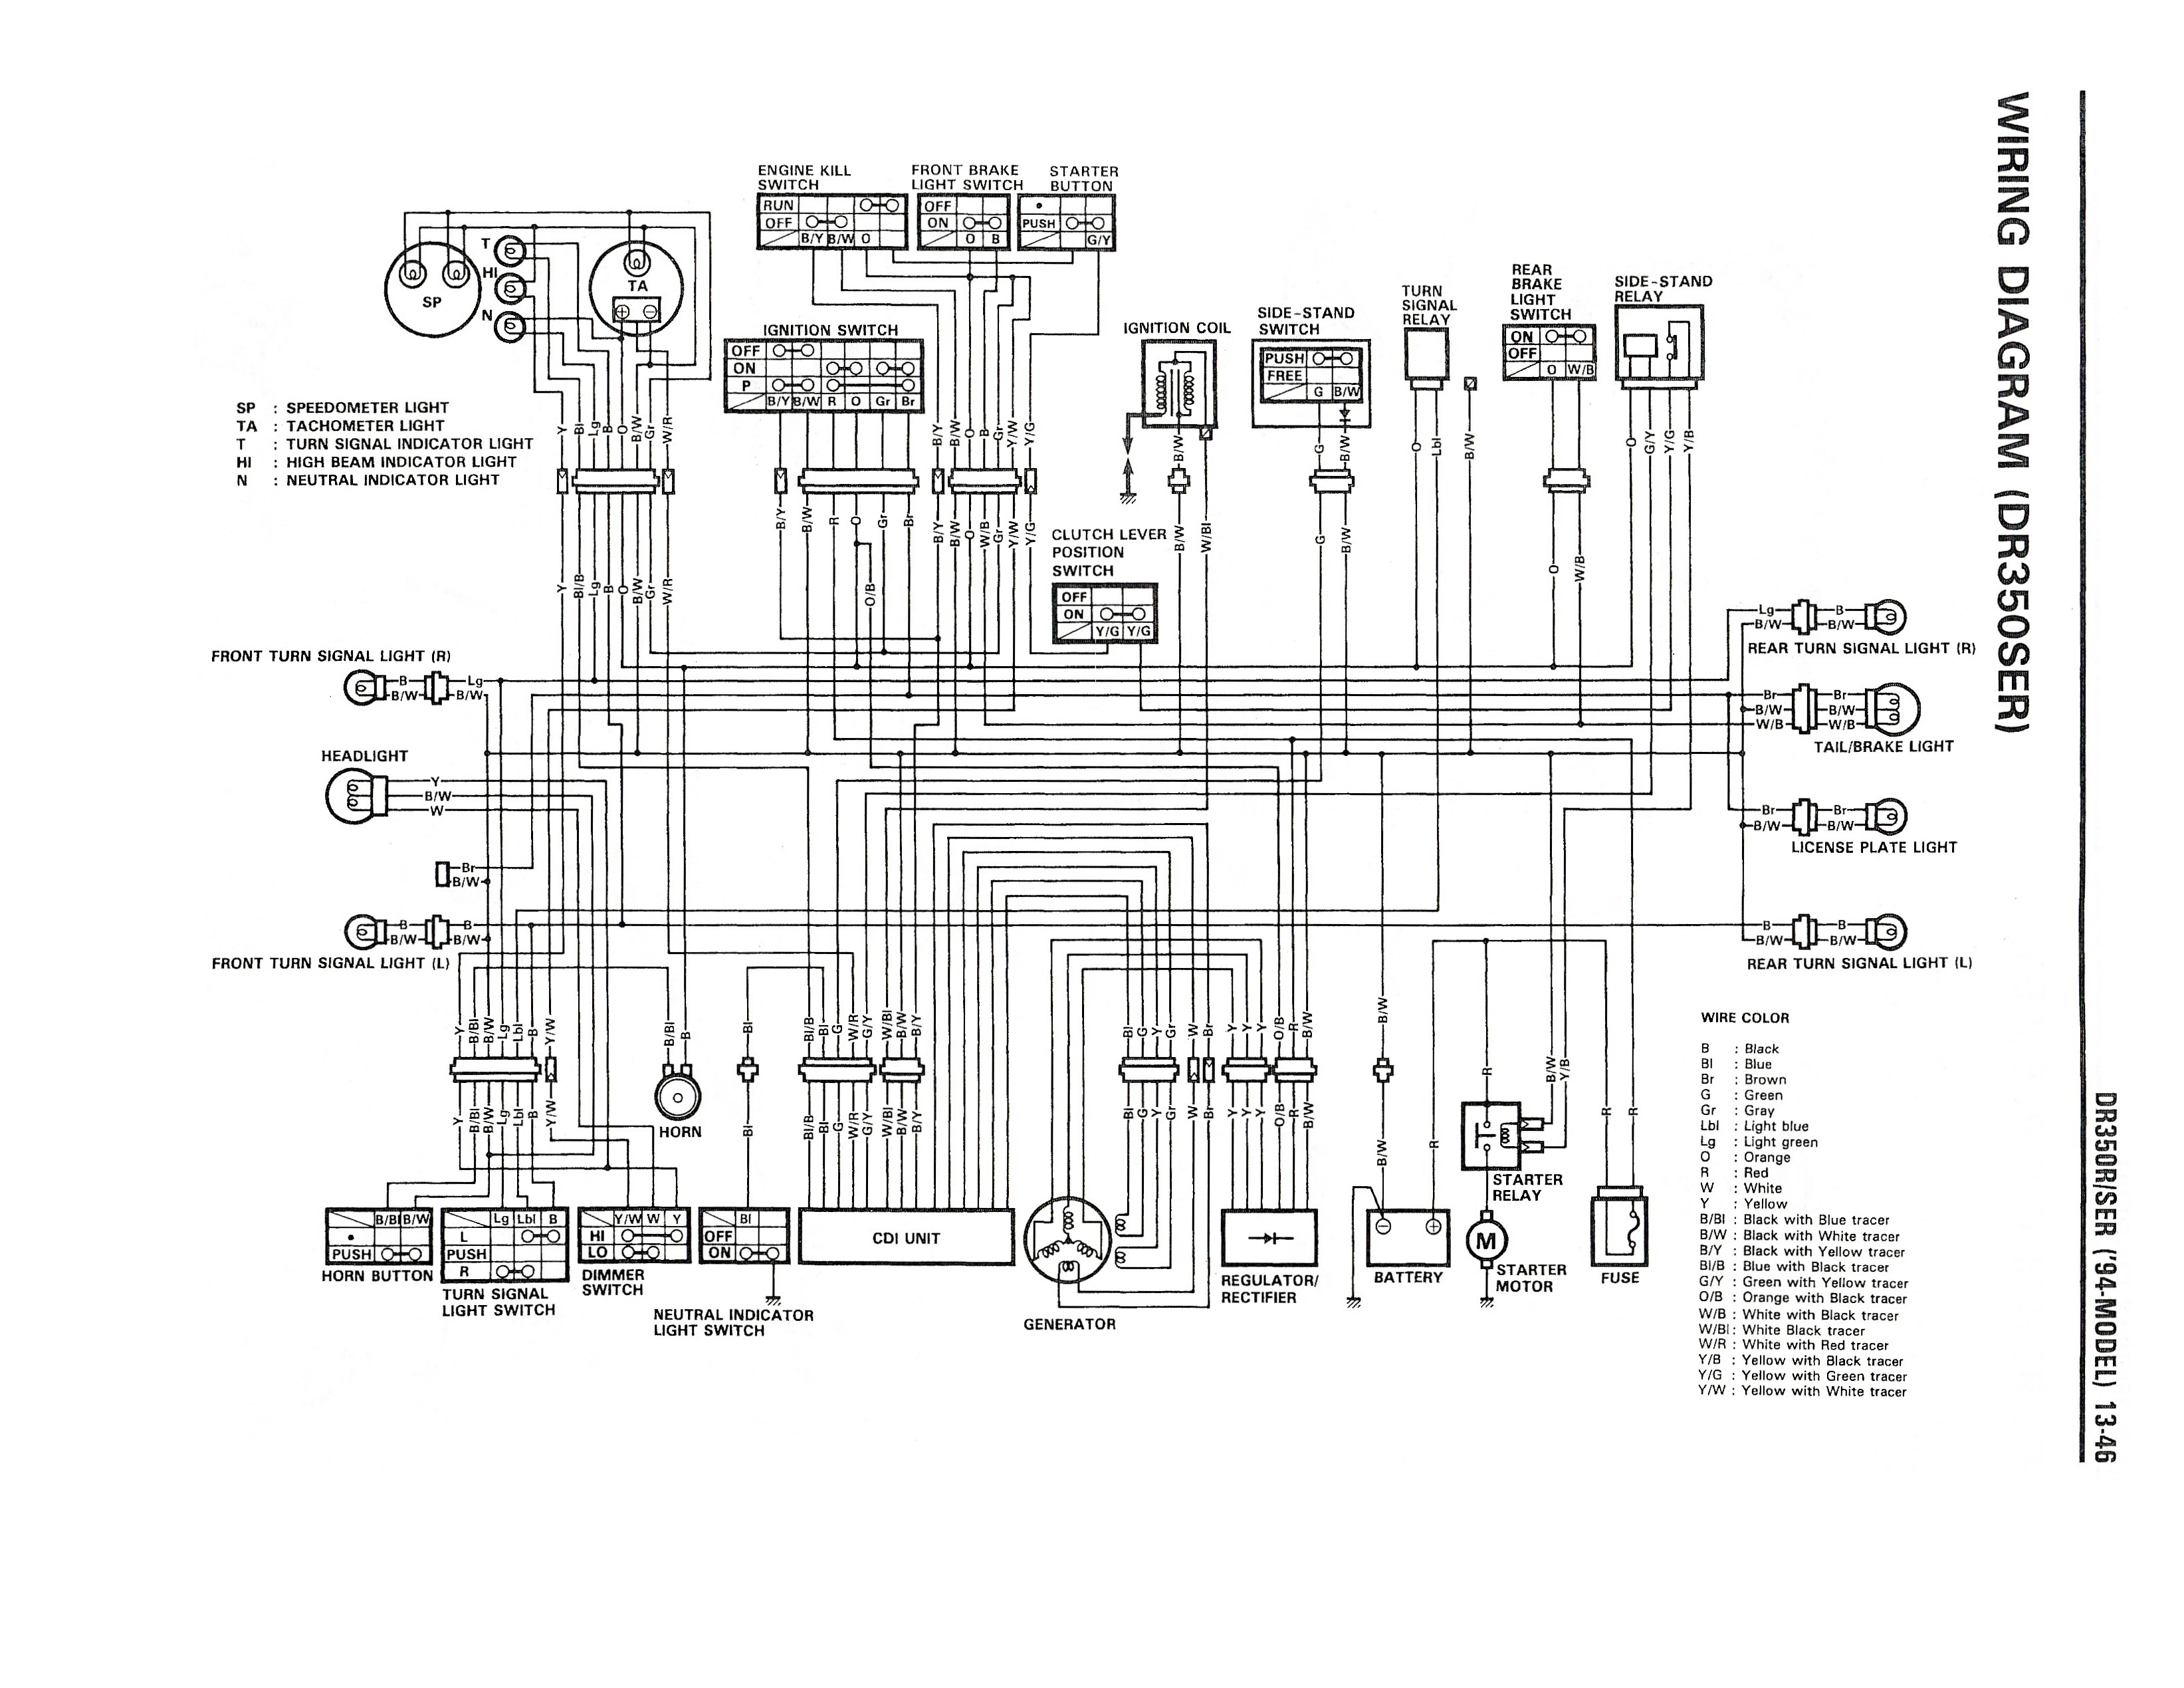 Wiring Diagram For The Dr350 Se And Later Models